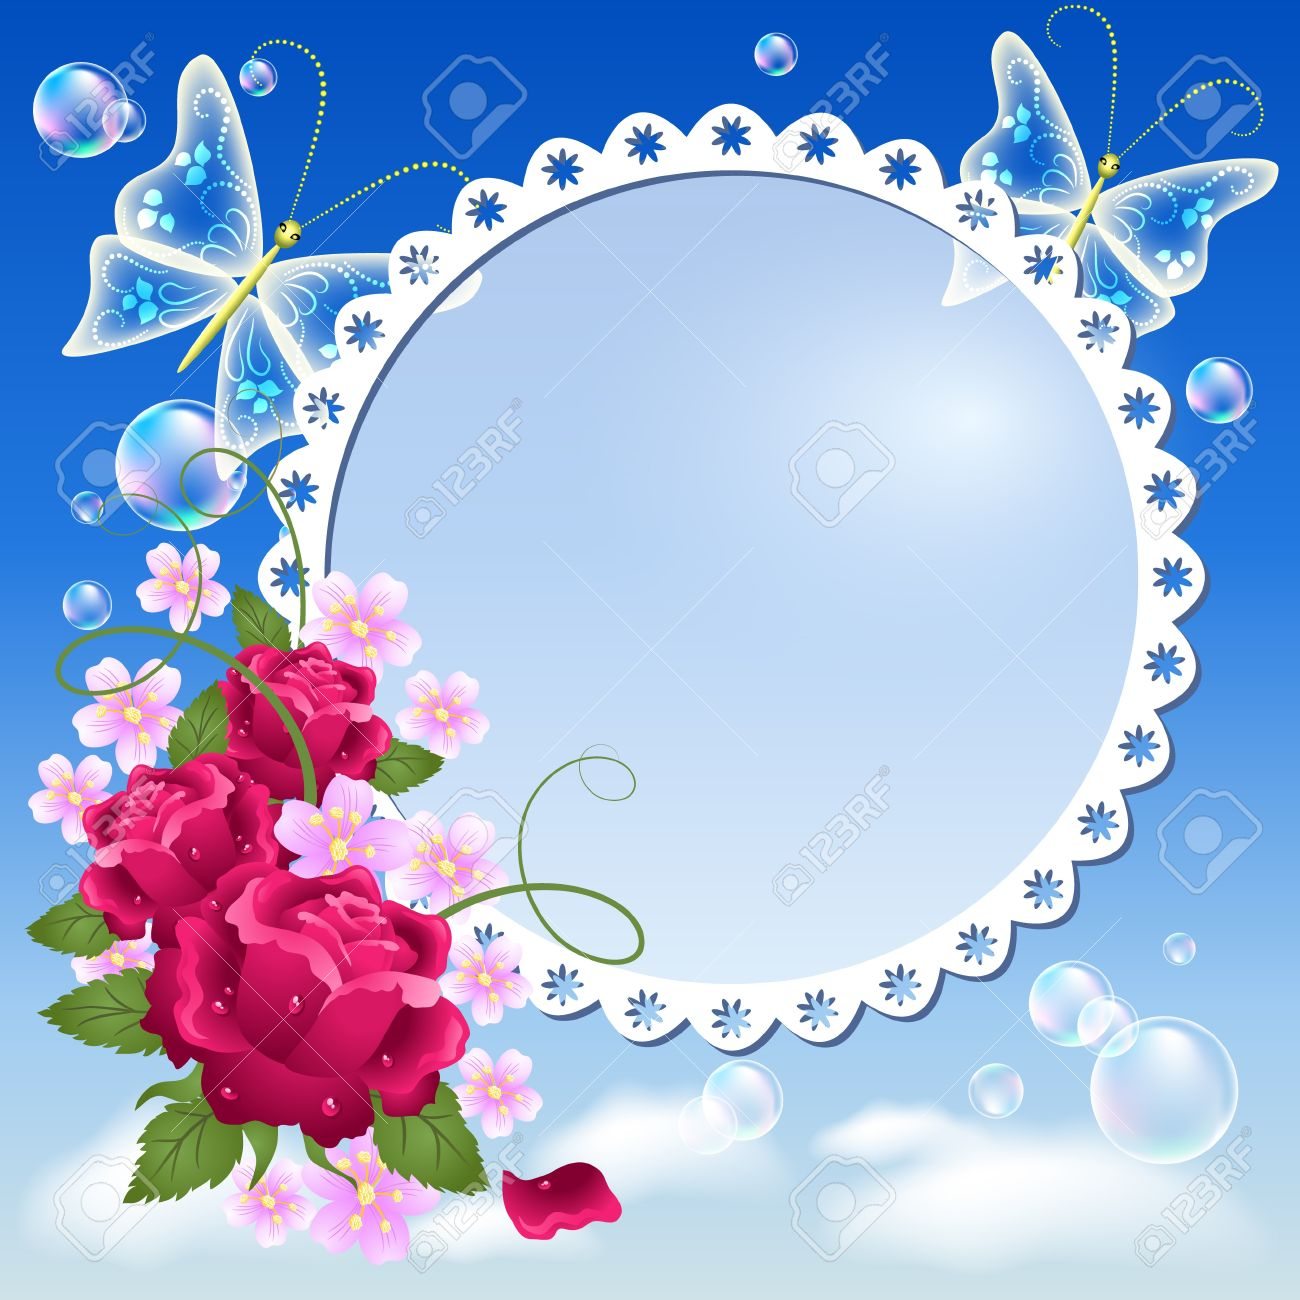 Photo frame with flowers and butterflies - 13662577